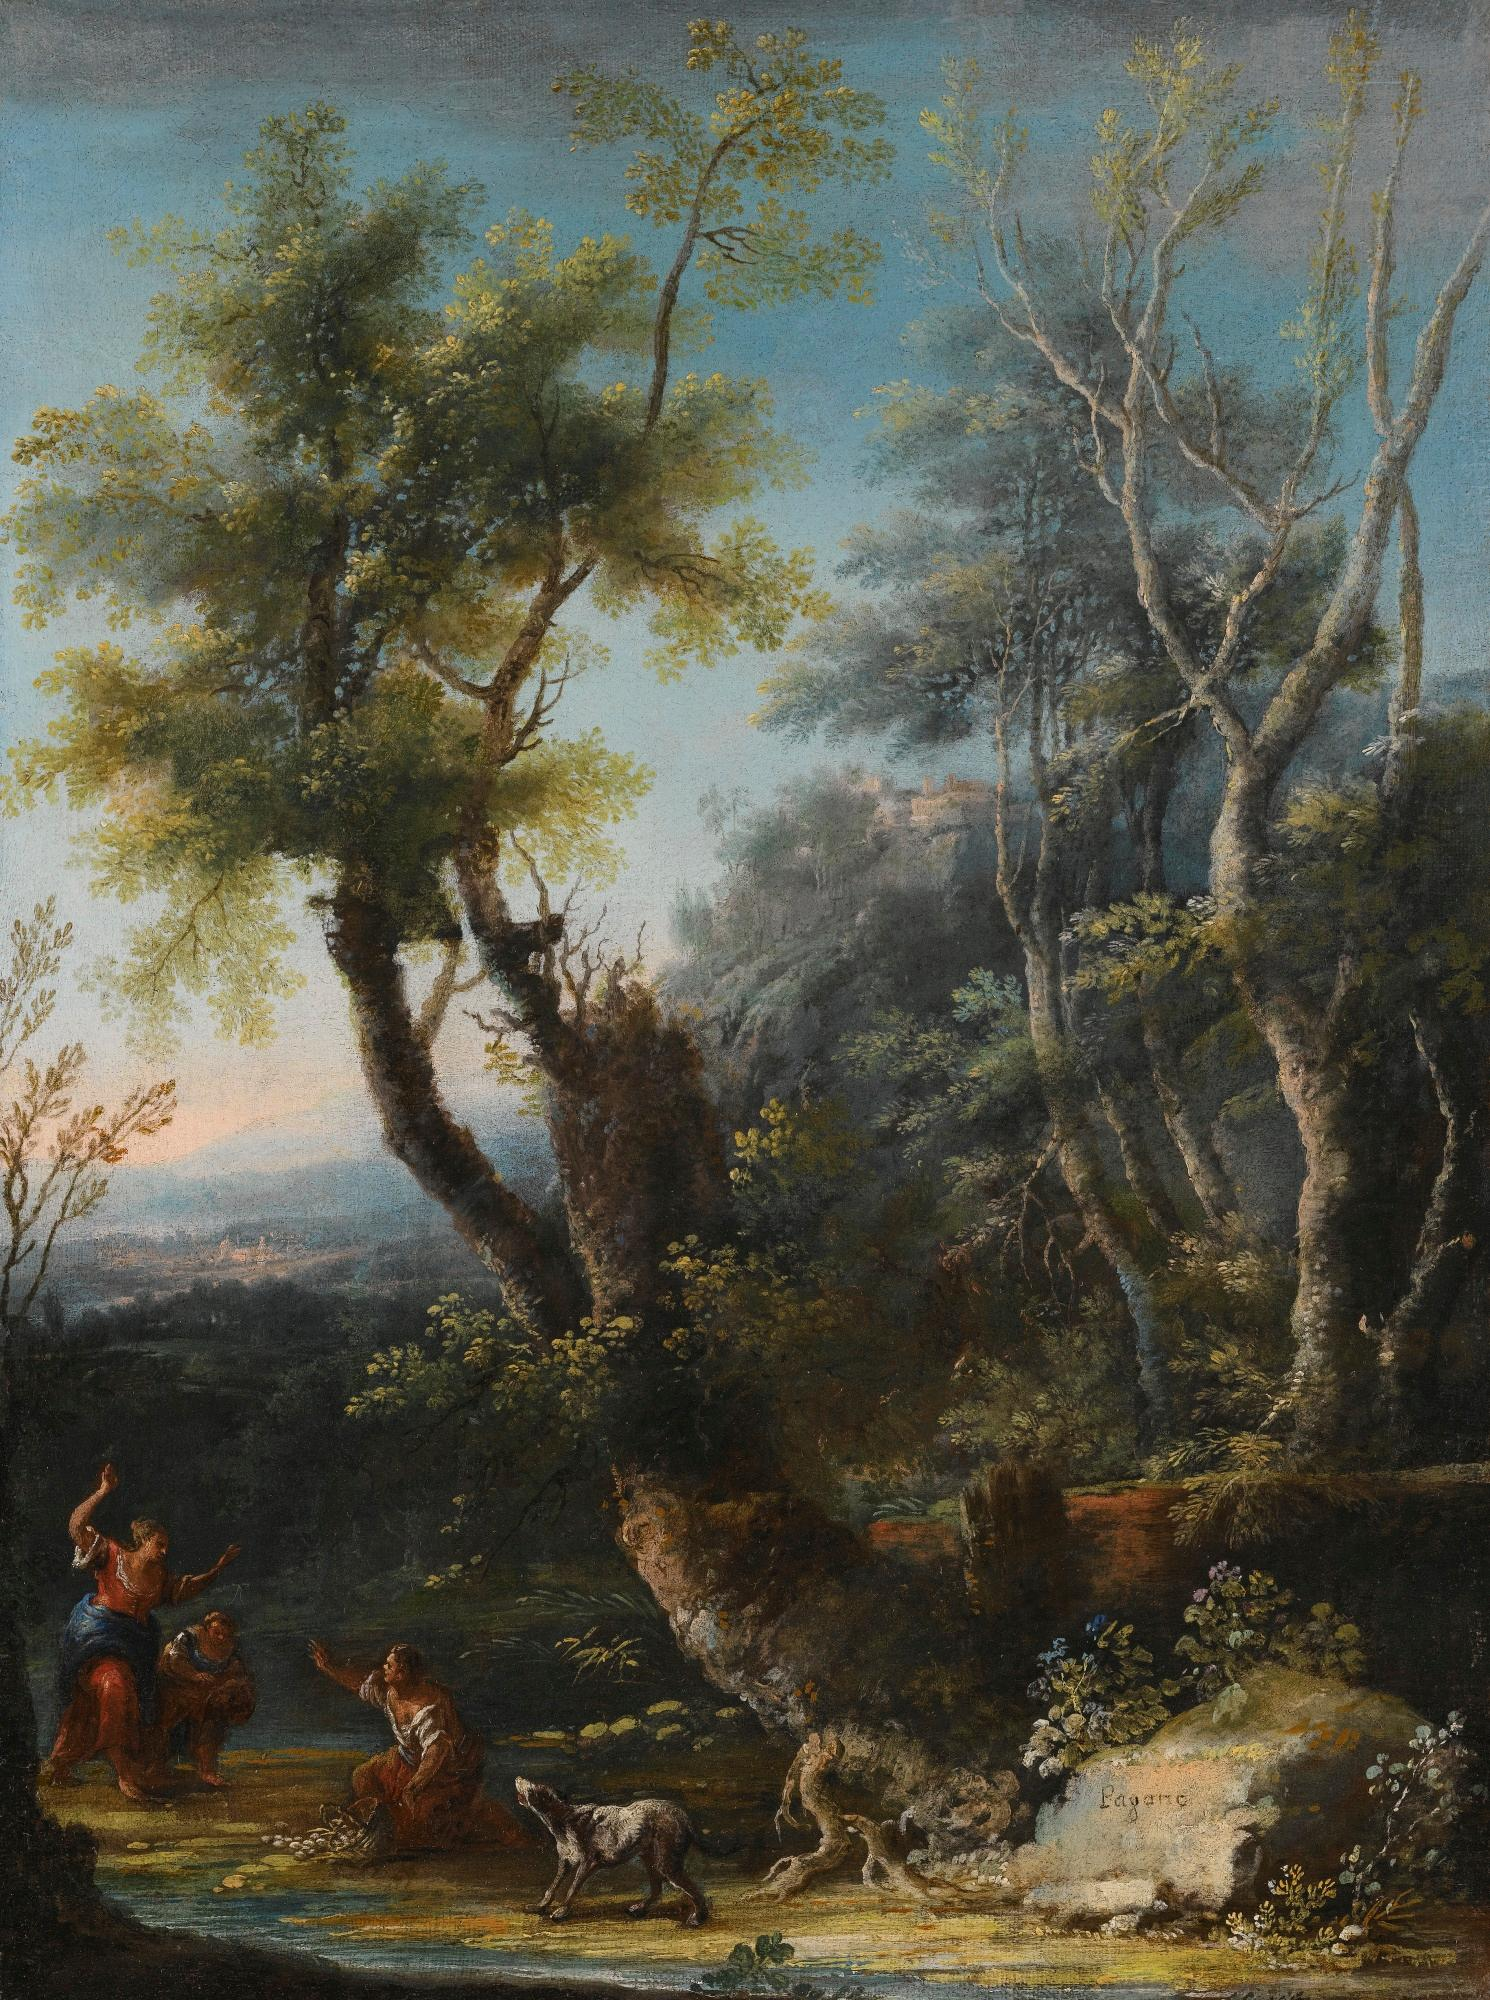 Wooded landscape with figures and a dog in the foreground, a castle and city beyond by Michele Pagano